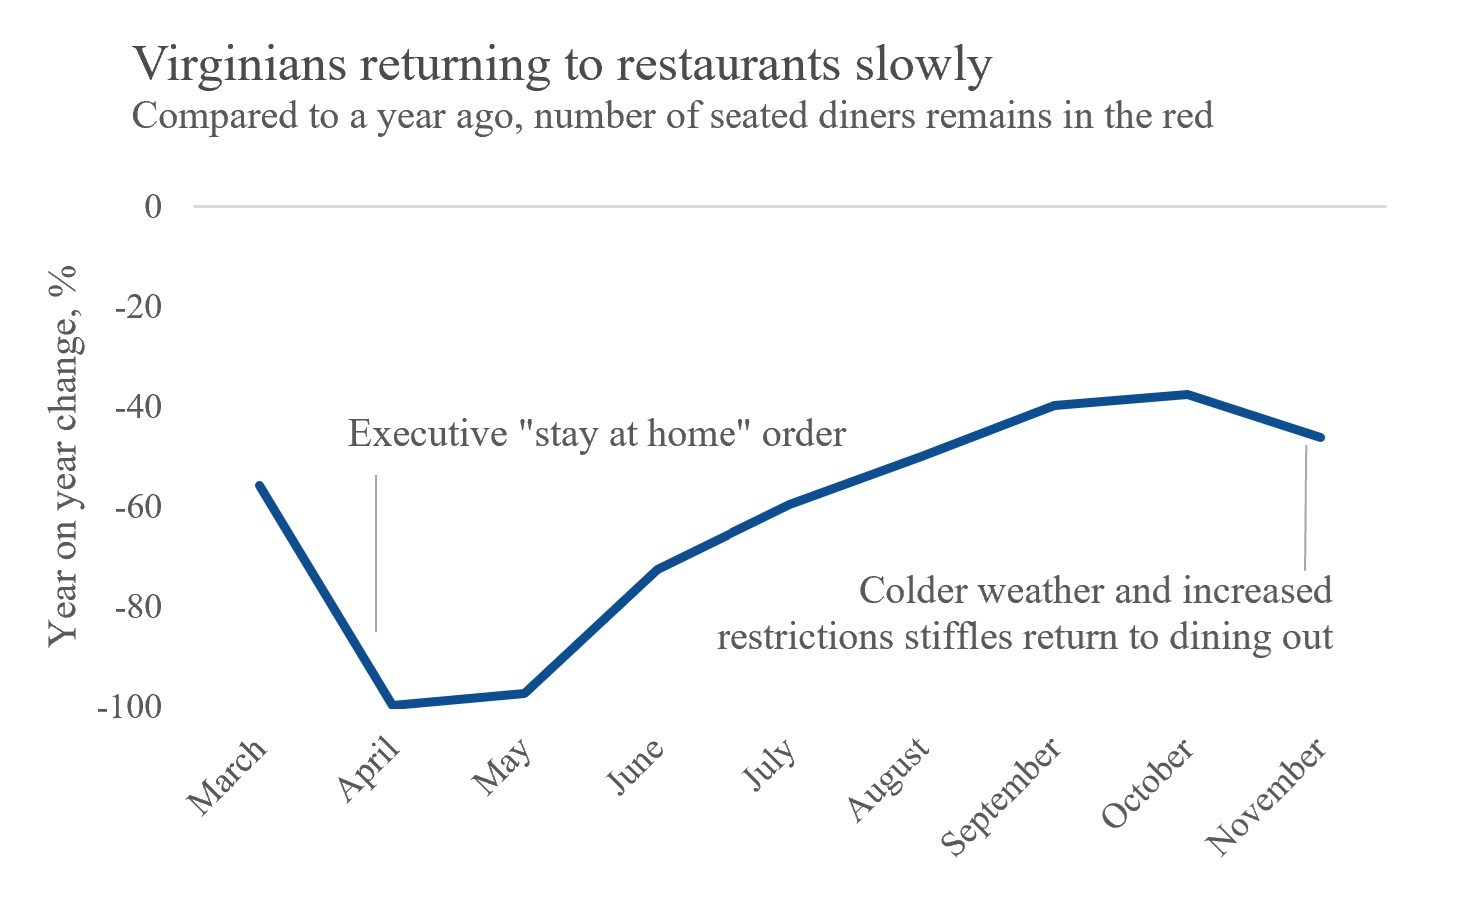 Figure 2. Seated diners in Virginia, March-November 2020 (Source: OpenTable.com)